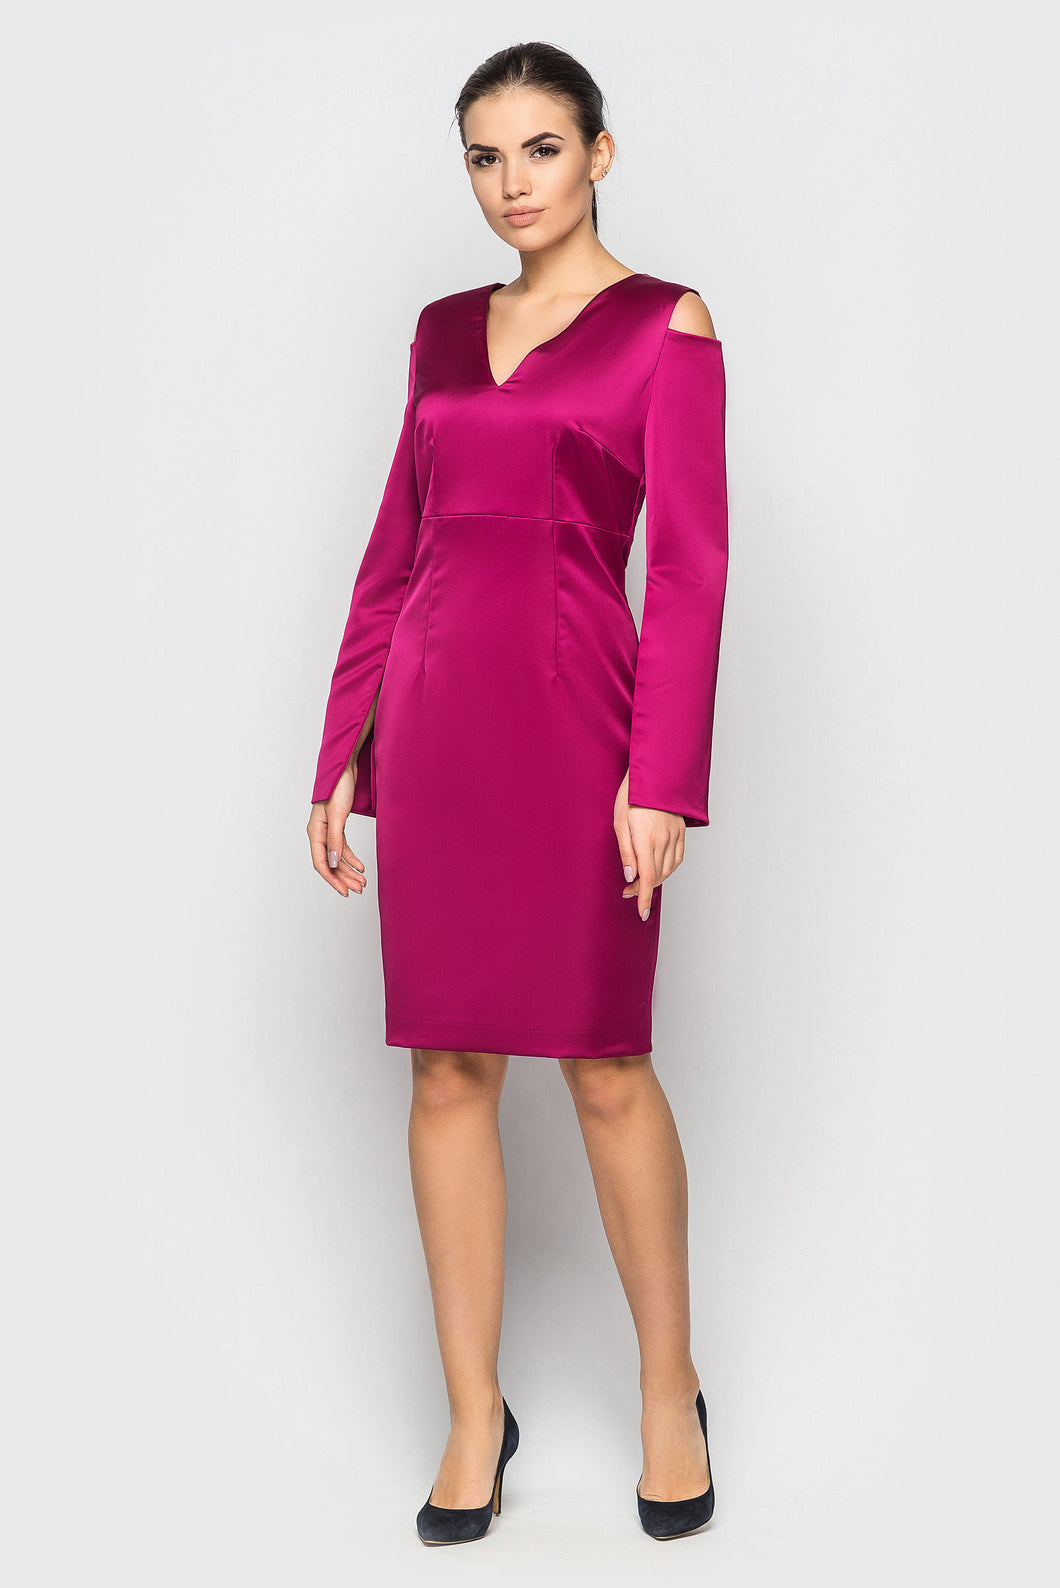 Cocktailkleid TASHA in Fuchsia